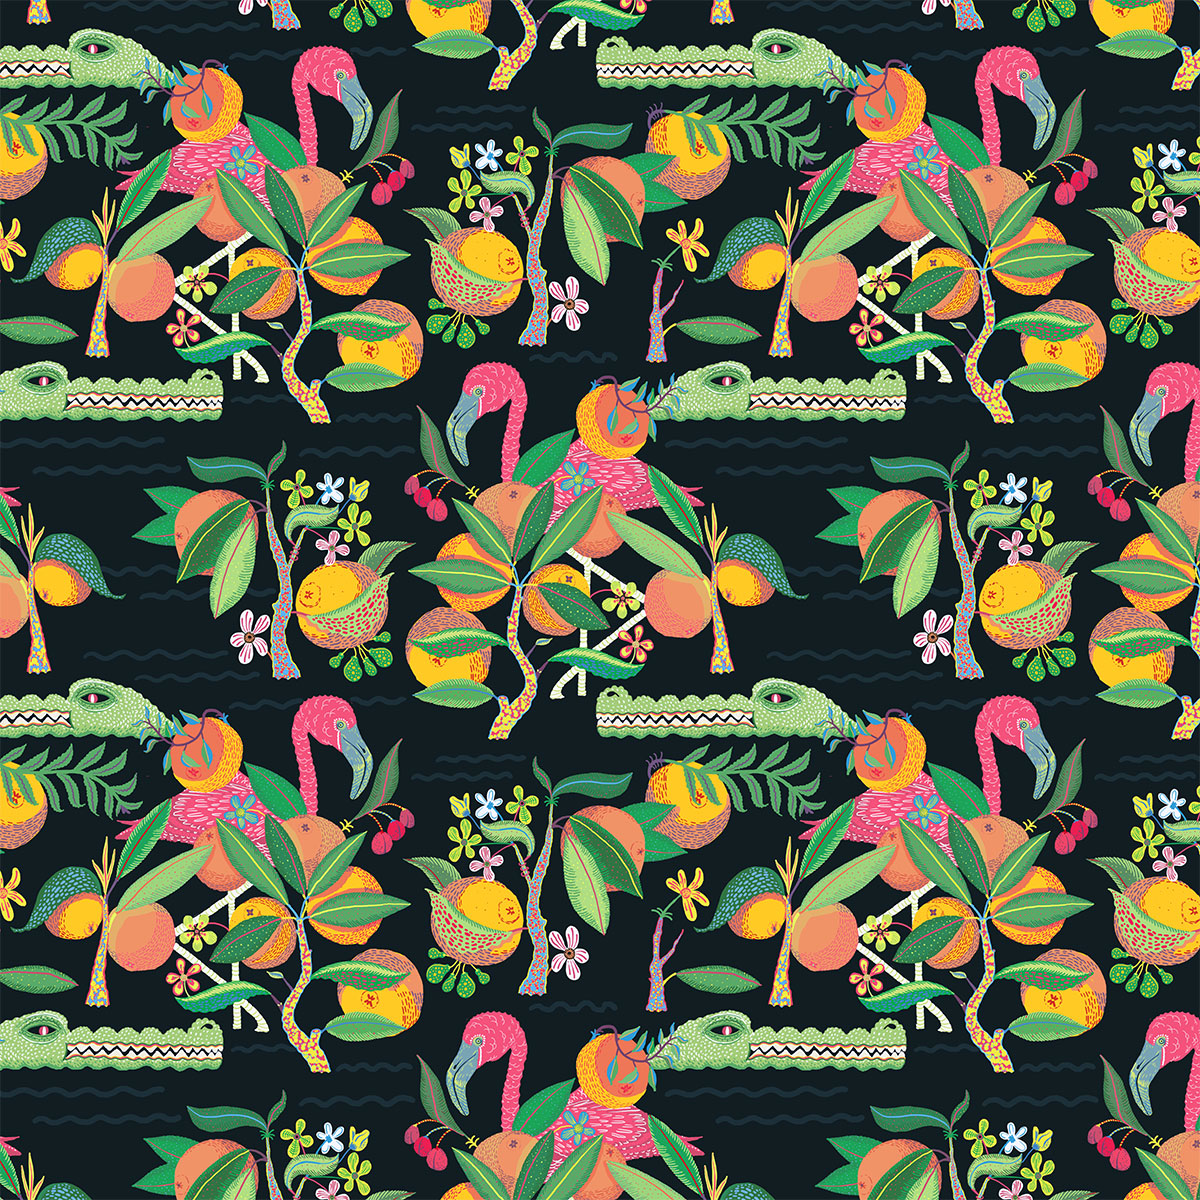 A Floridian pattern complete with Flamingos and gators!